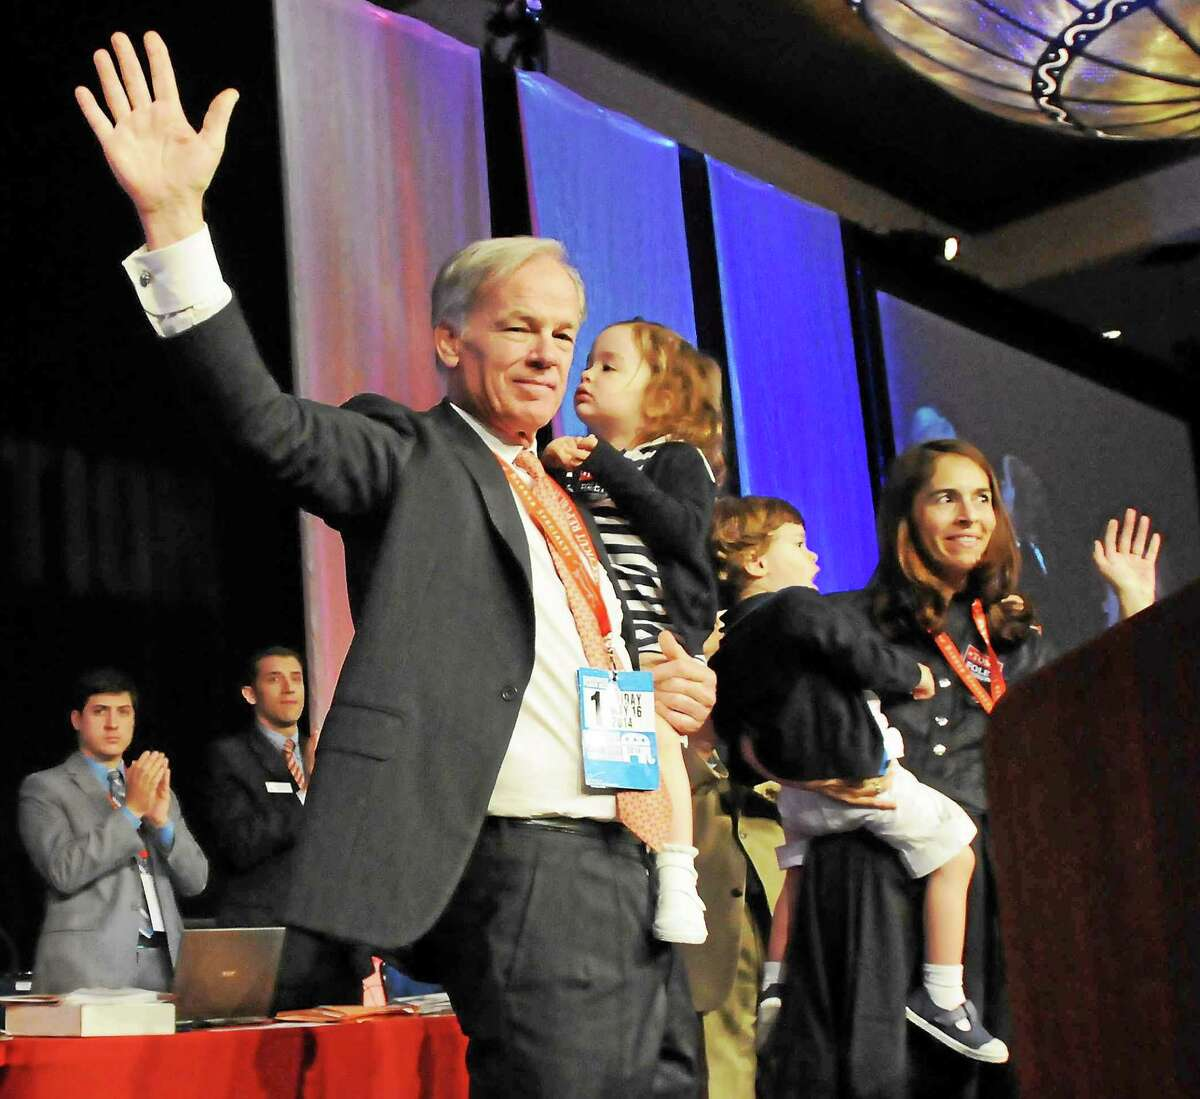 Tom Foley gets the republican nomination for governor, as he waves holding his daughter Grace and his wife Leslie holding their son Reed during the 2014 Connecticut Republican State Convention at the Mohegan Sun Convention Center in Uncasville, Conn. on May 17, 2014.